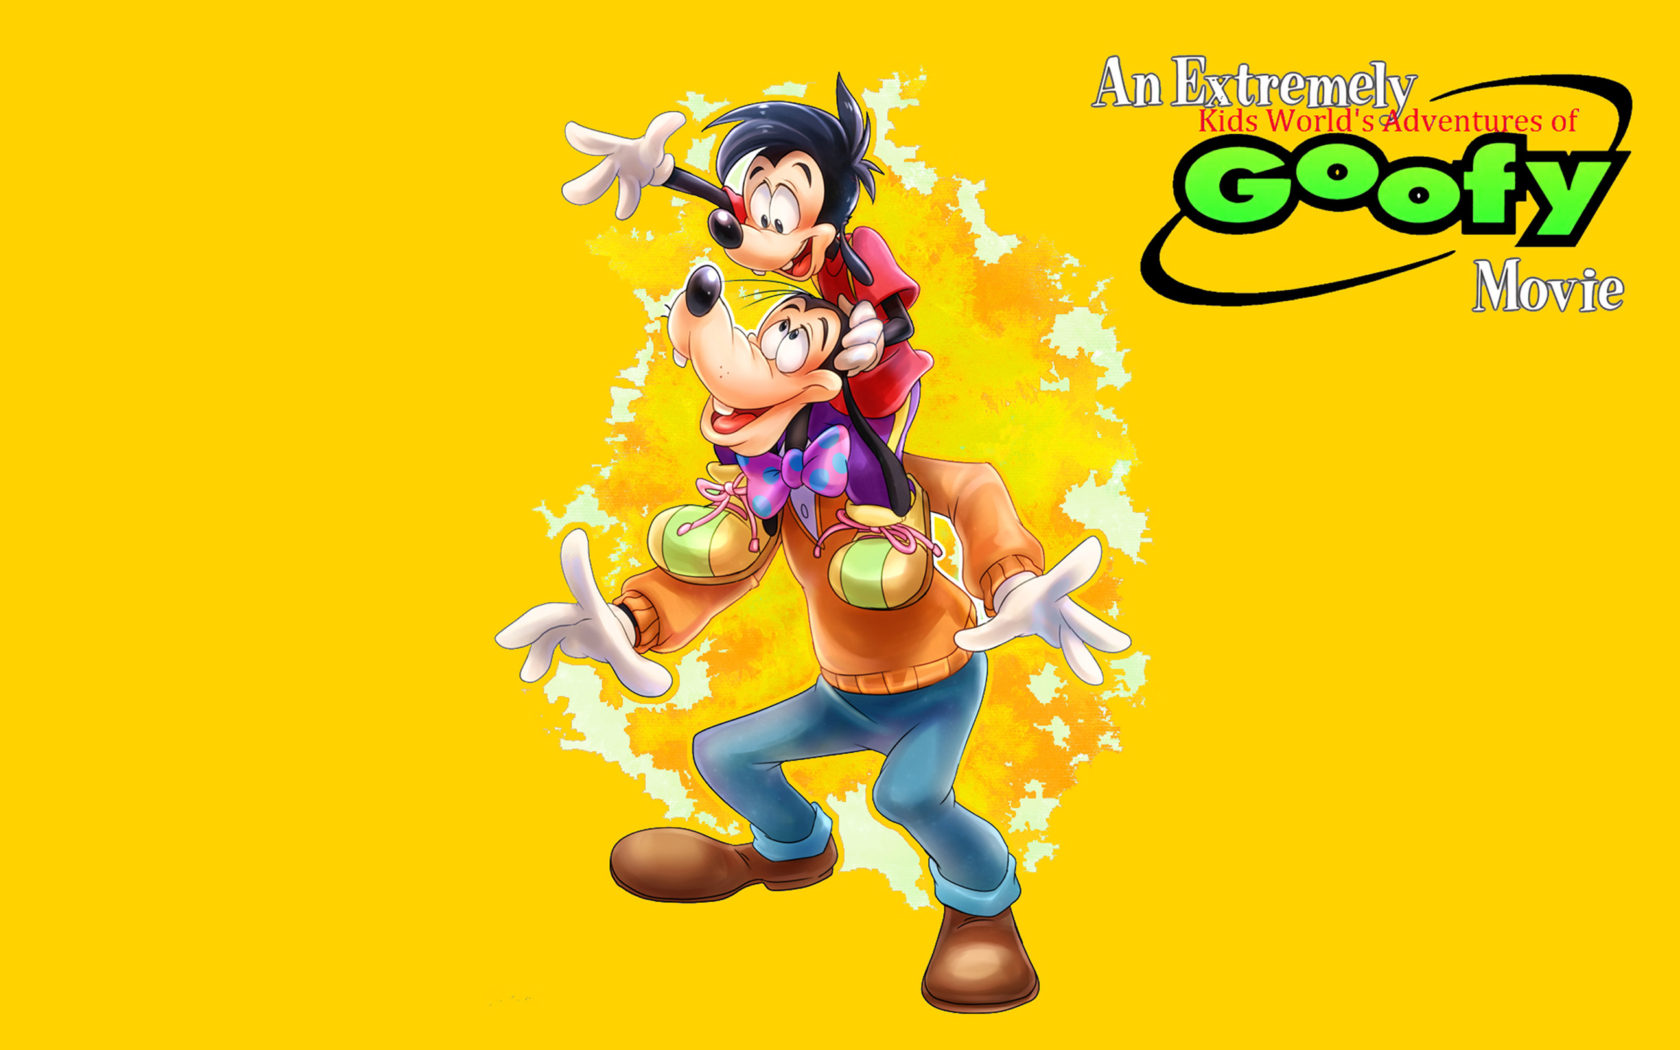 an extremely goofy movie goofy and max disney cartoon poster wallpapers hd for mobile phones